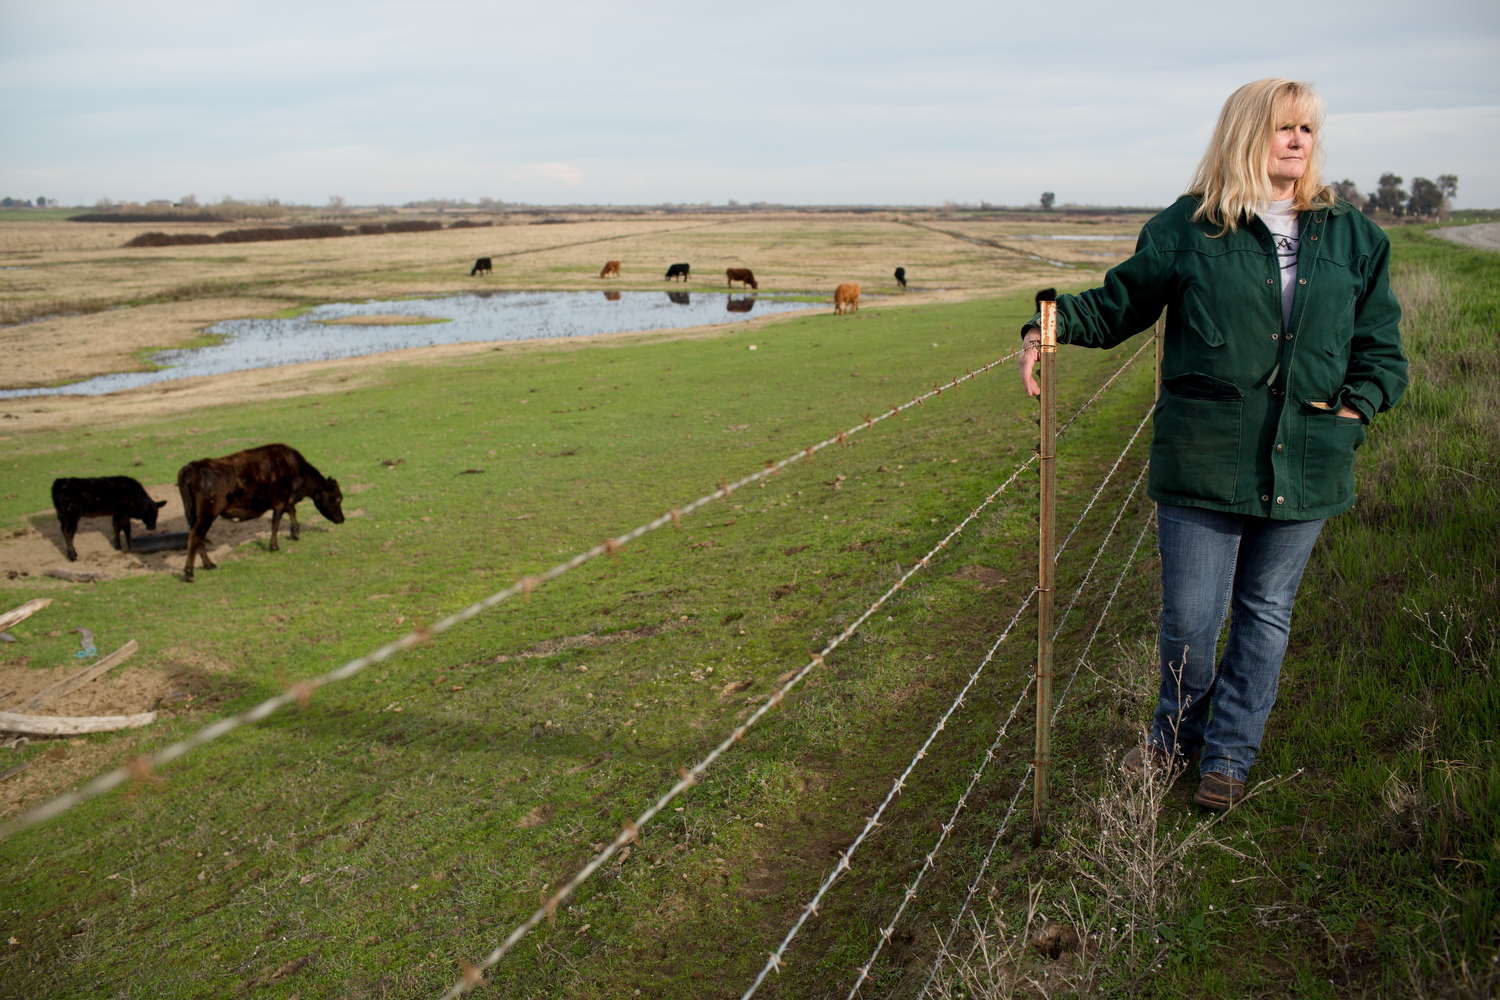 Karen Cunningham, a rancher and land owner on Bradford Island in the Sacramento–San Joaquin River Delta.